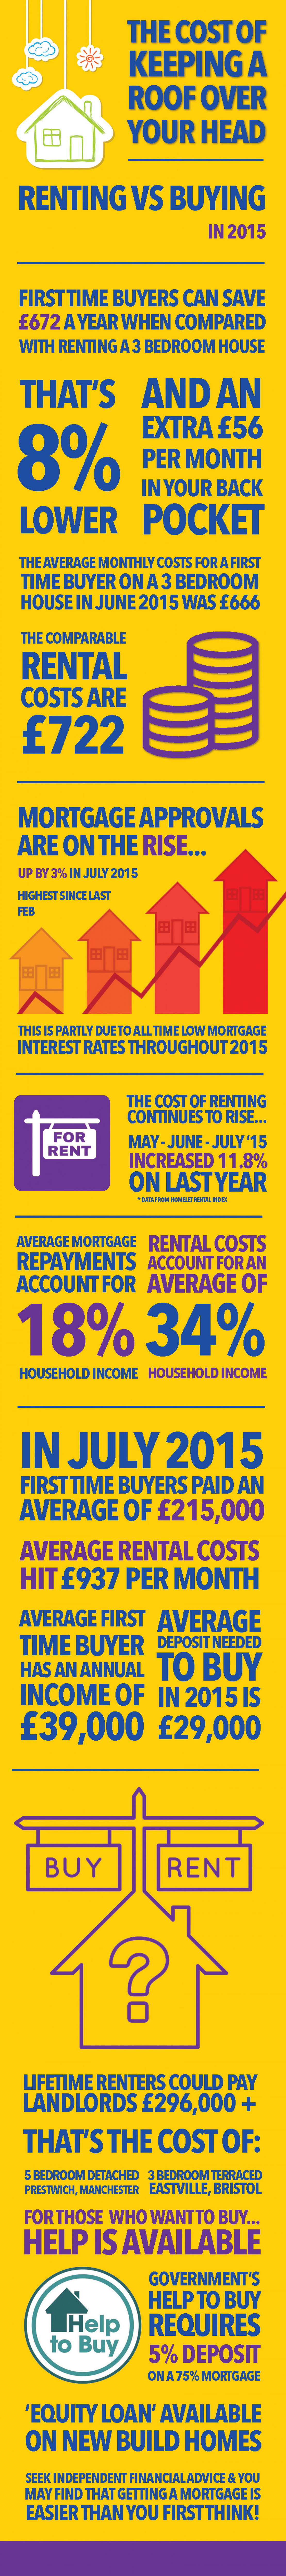 The Cost Of Keeping A Roof Over Your Head Infographic